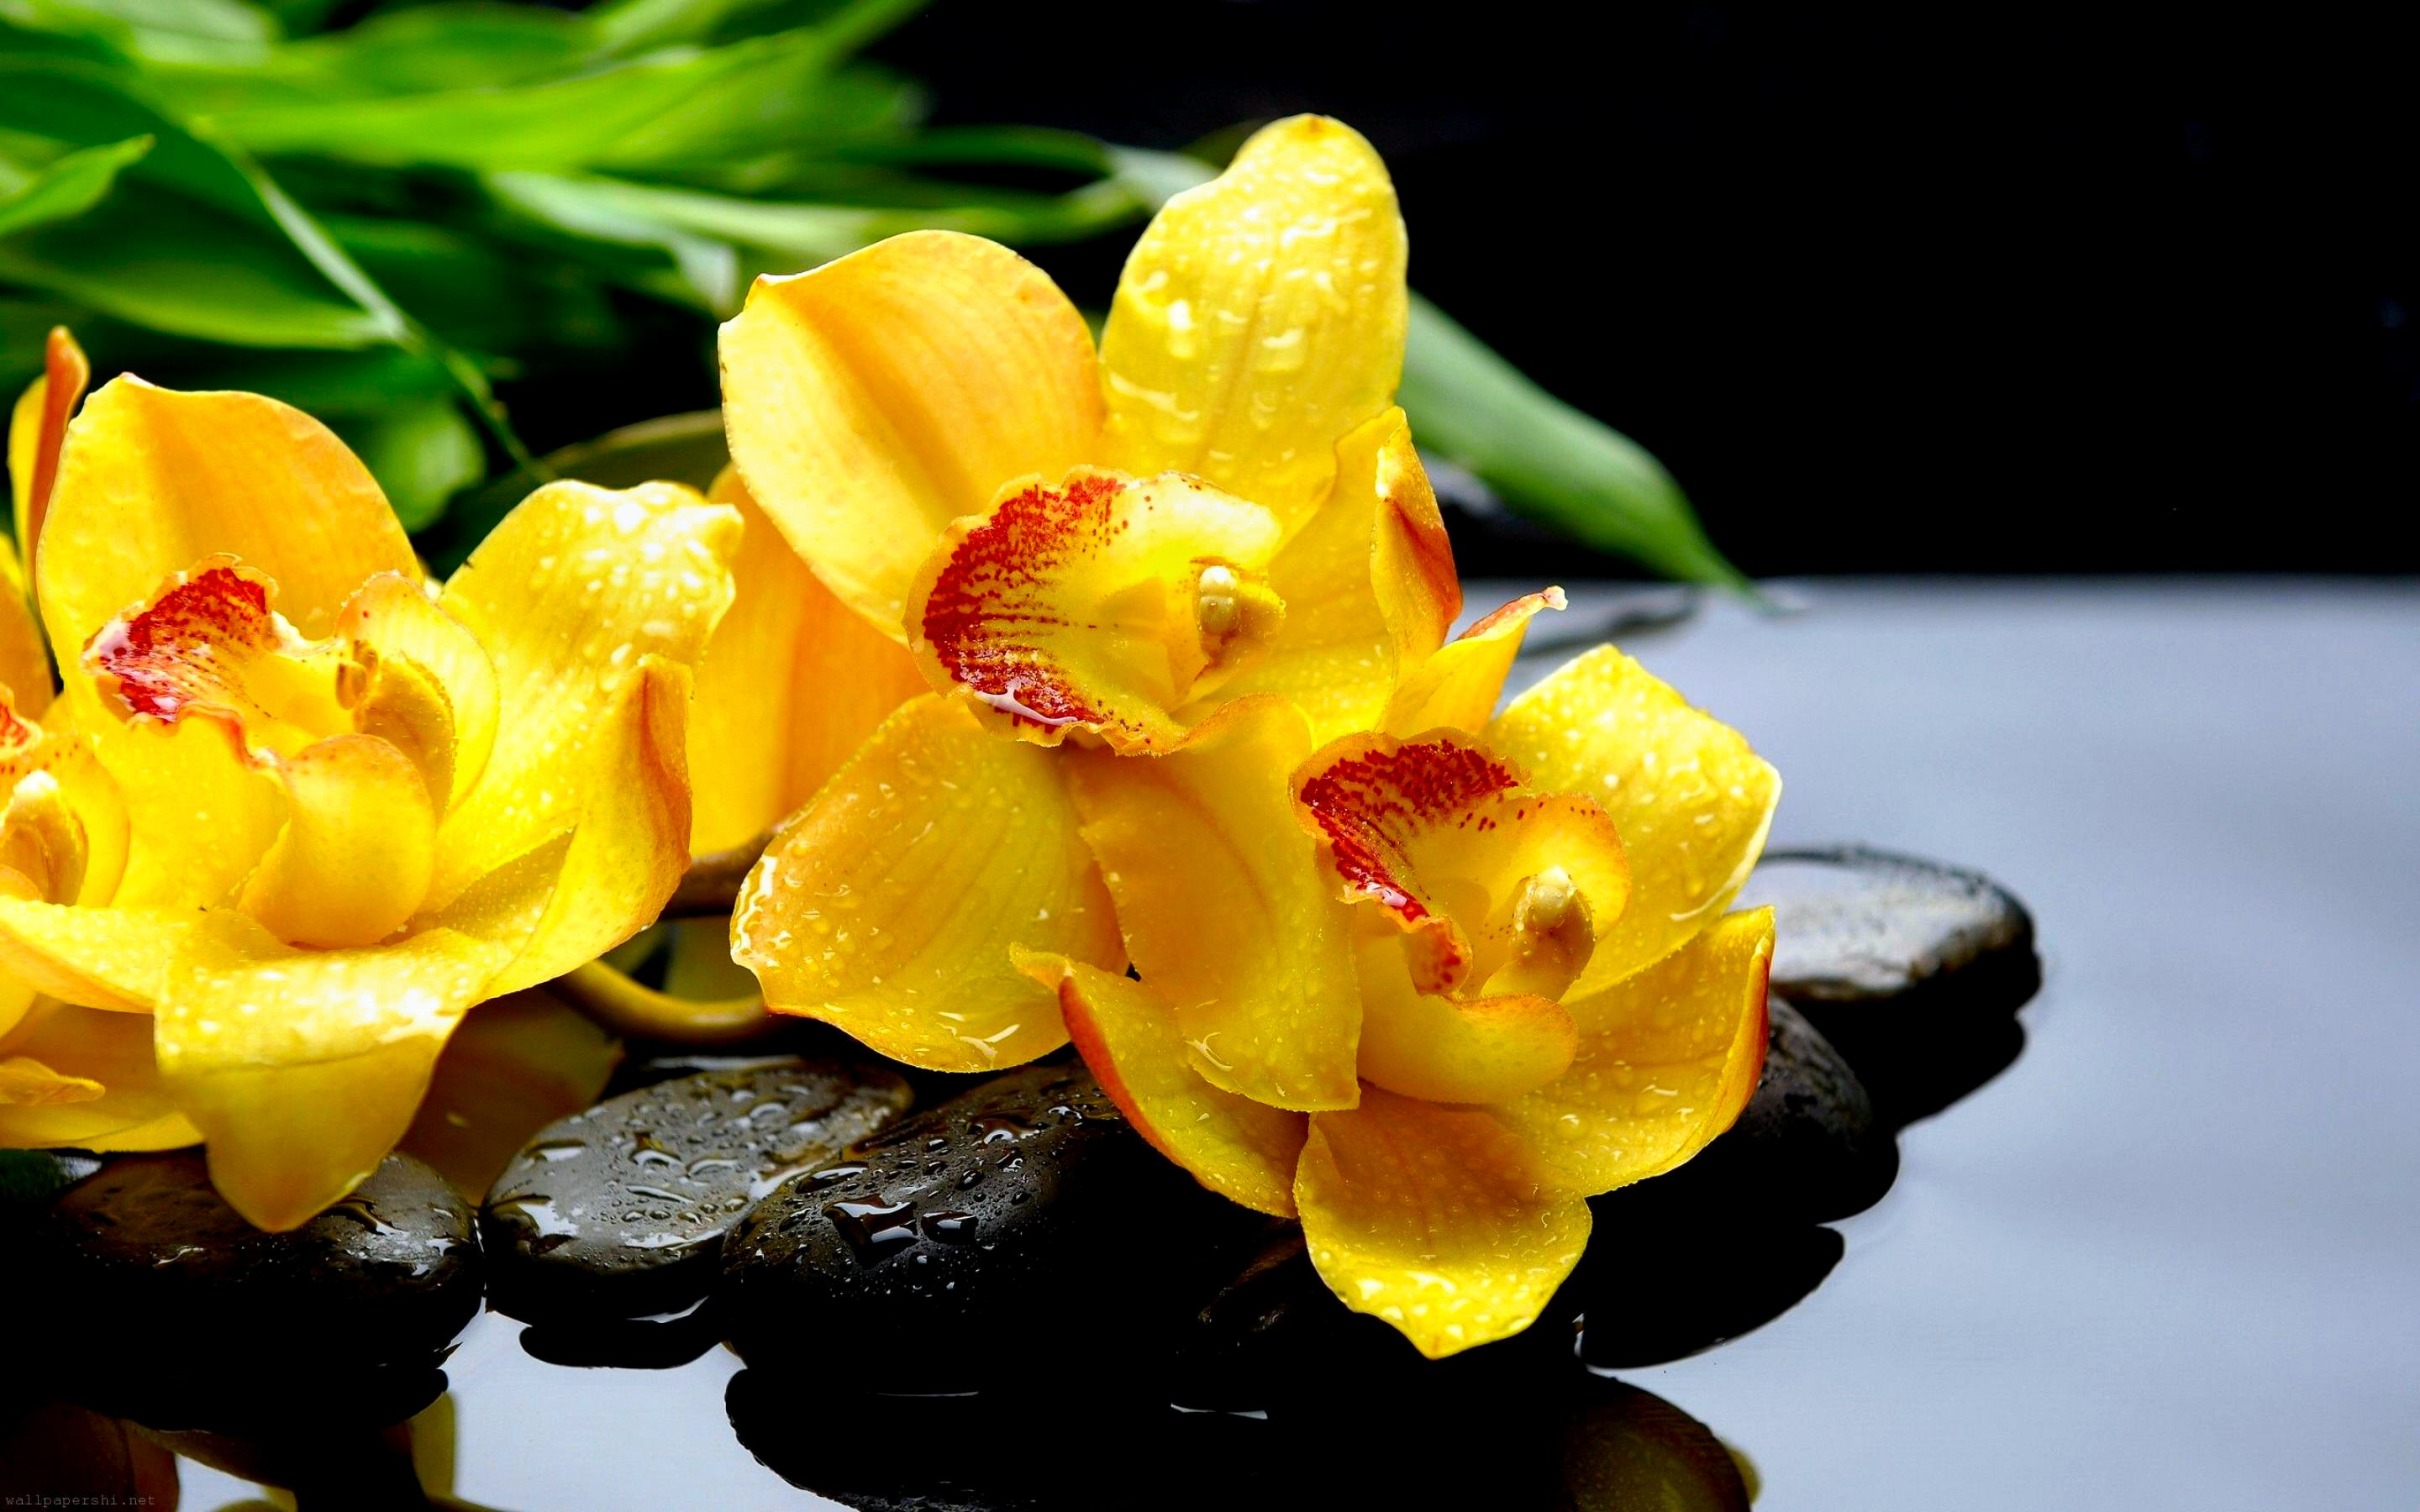 Wallpaper orchidee steine  13072 Blumen HD Wallpapers | Hintergründe - Wallpaper Abyss